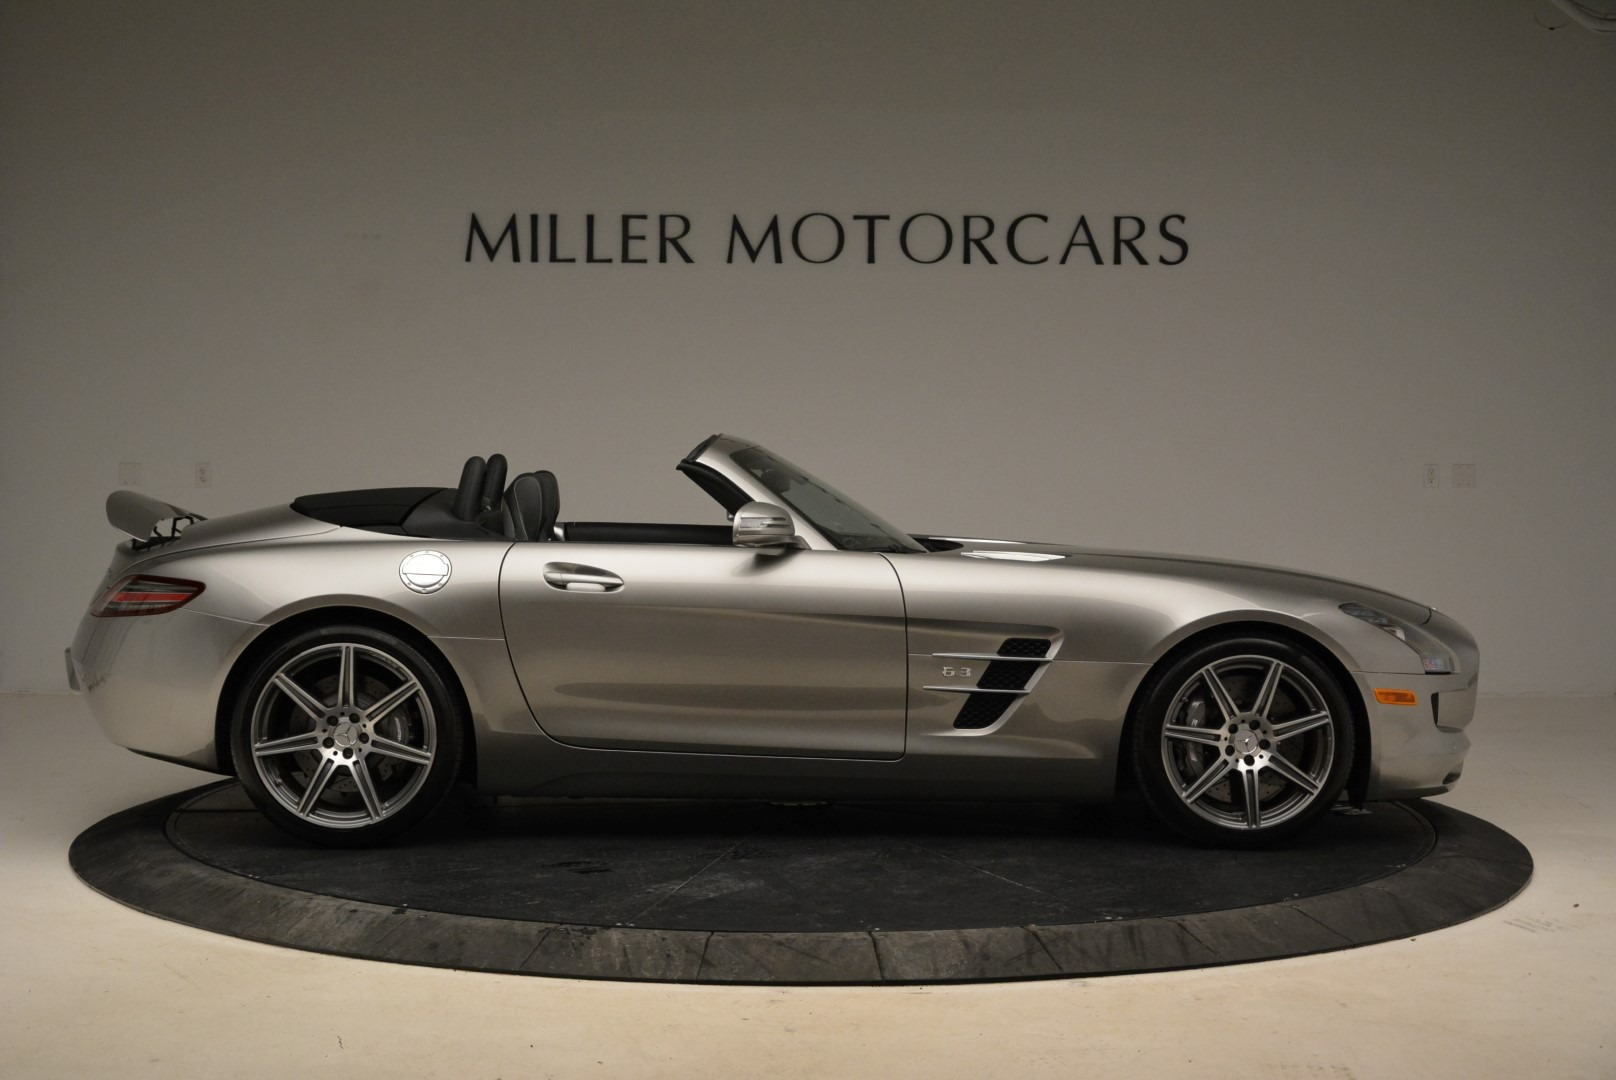 Used 2012 Mercedes-Benz SLS AMG  For Sale In Greenwich, CT. Alfa Romeo of Greenwich, 7330 2068_p9